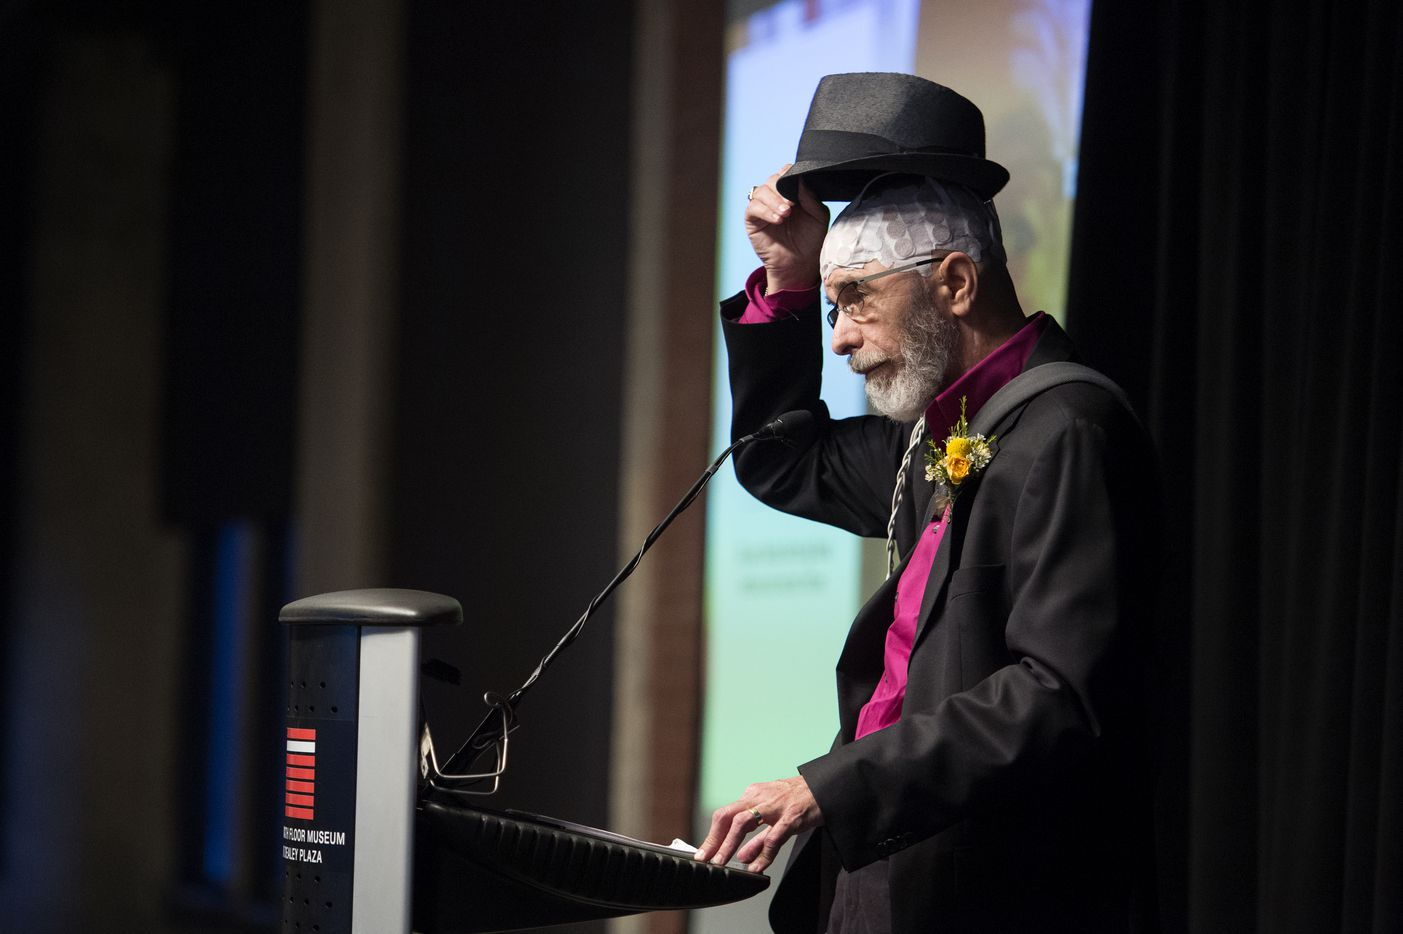 Jeffrey Weiss displayed treatment apparatus on his head while receiving a North Texas Legends Award at the Press Club of Dallas' awards ceremony in June 2017 at The Sixth Floor Museum in Dallas.